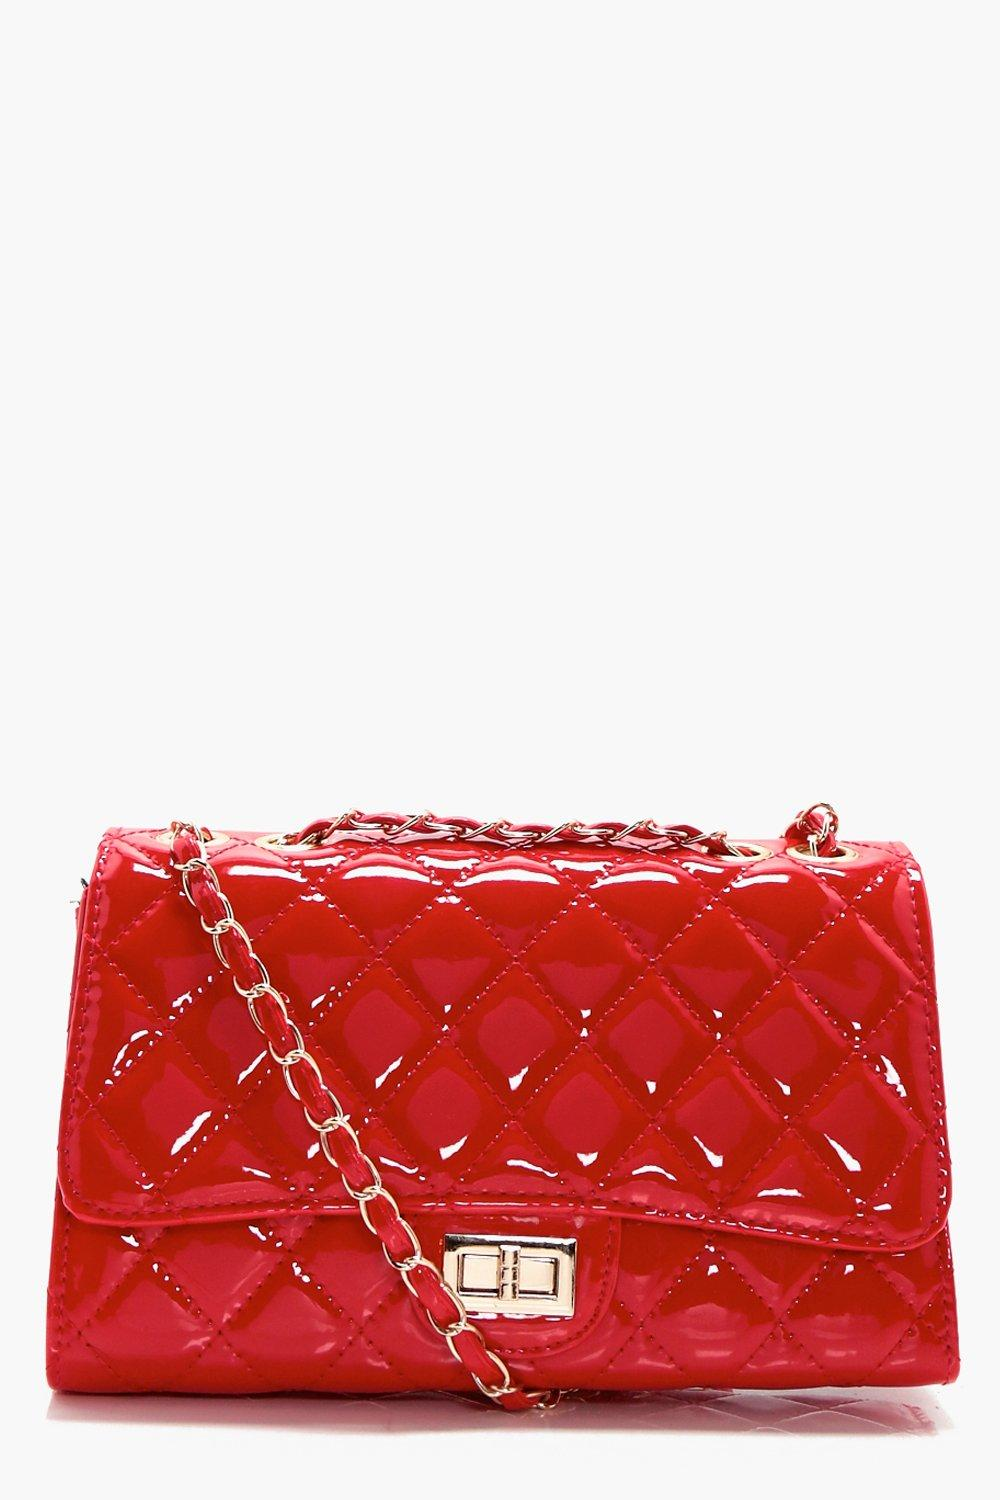 Patent Quilted Cross Body Bag - red - Rosie Patent